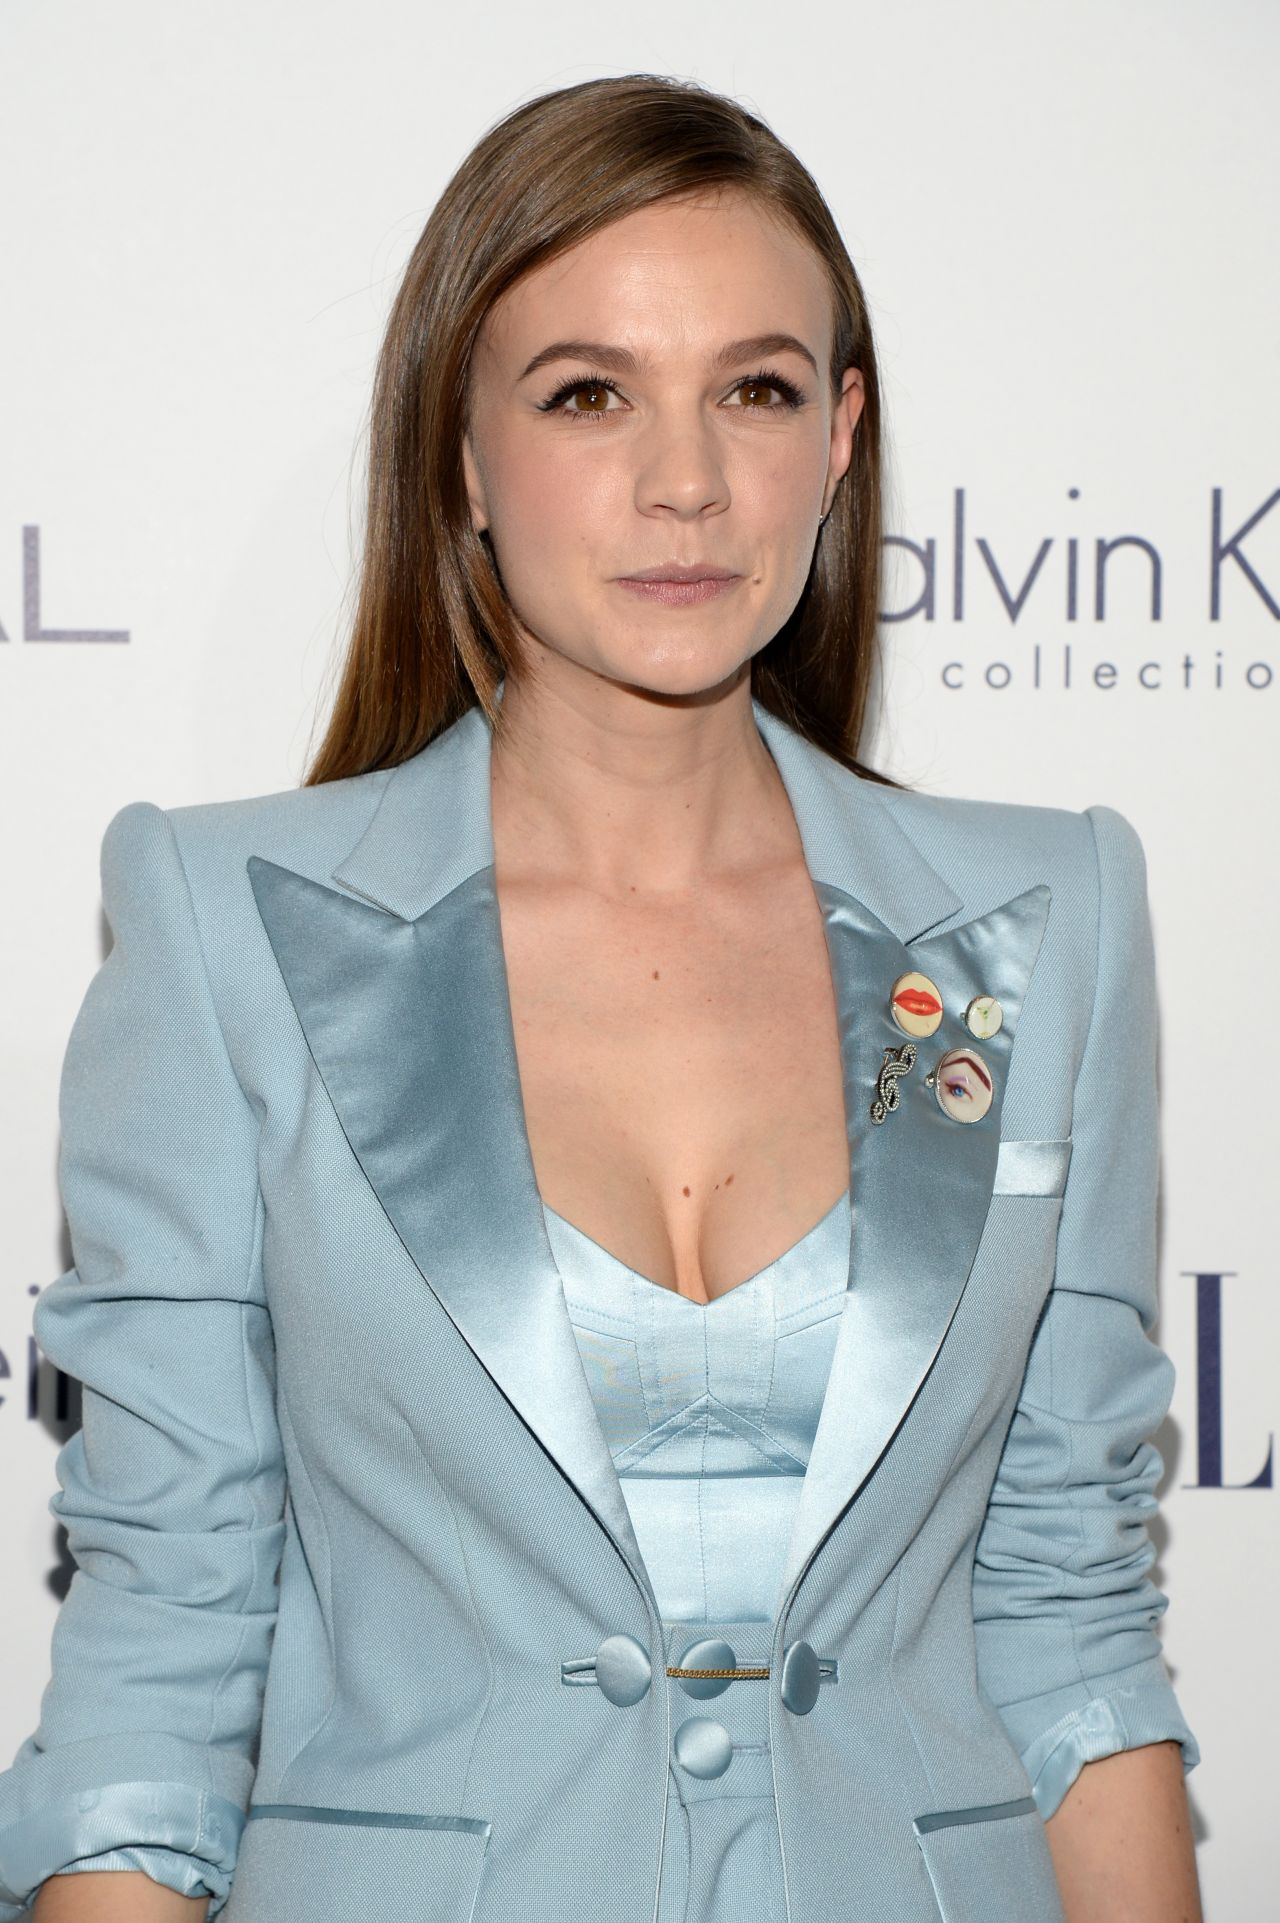 carey-mulligan-2015-elle-women-in-hollywood-awards-in-los-angeles_2